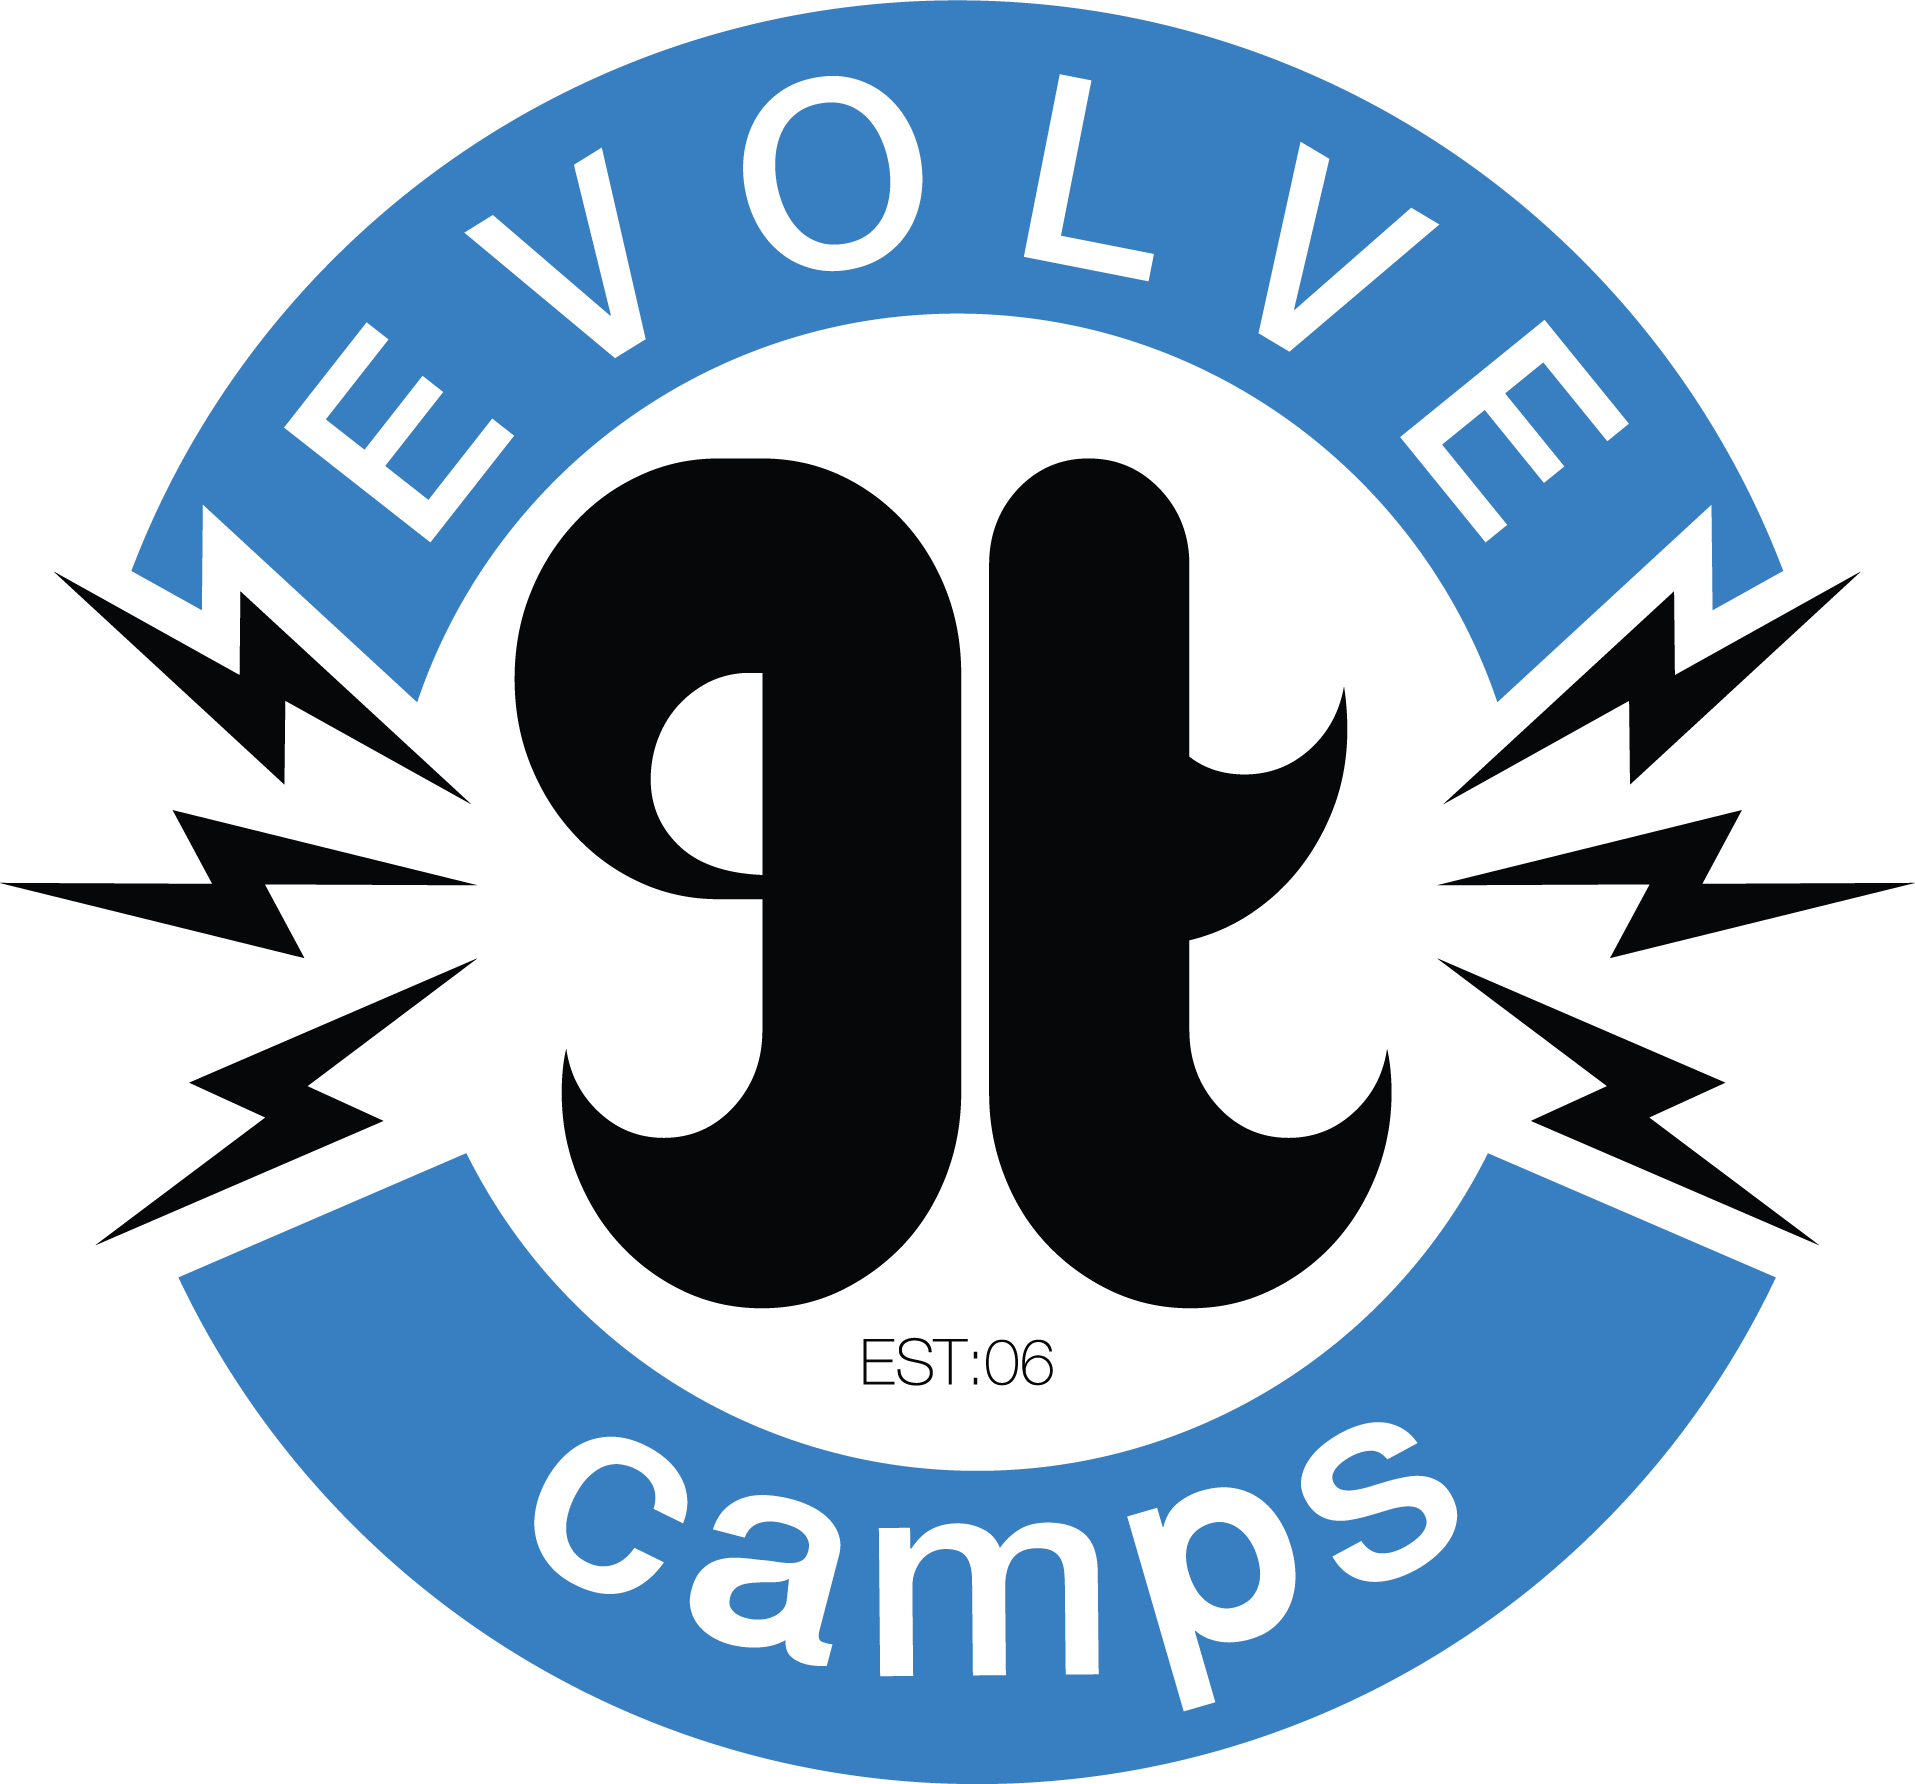 Evolve Camps